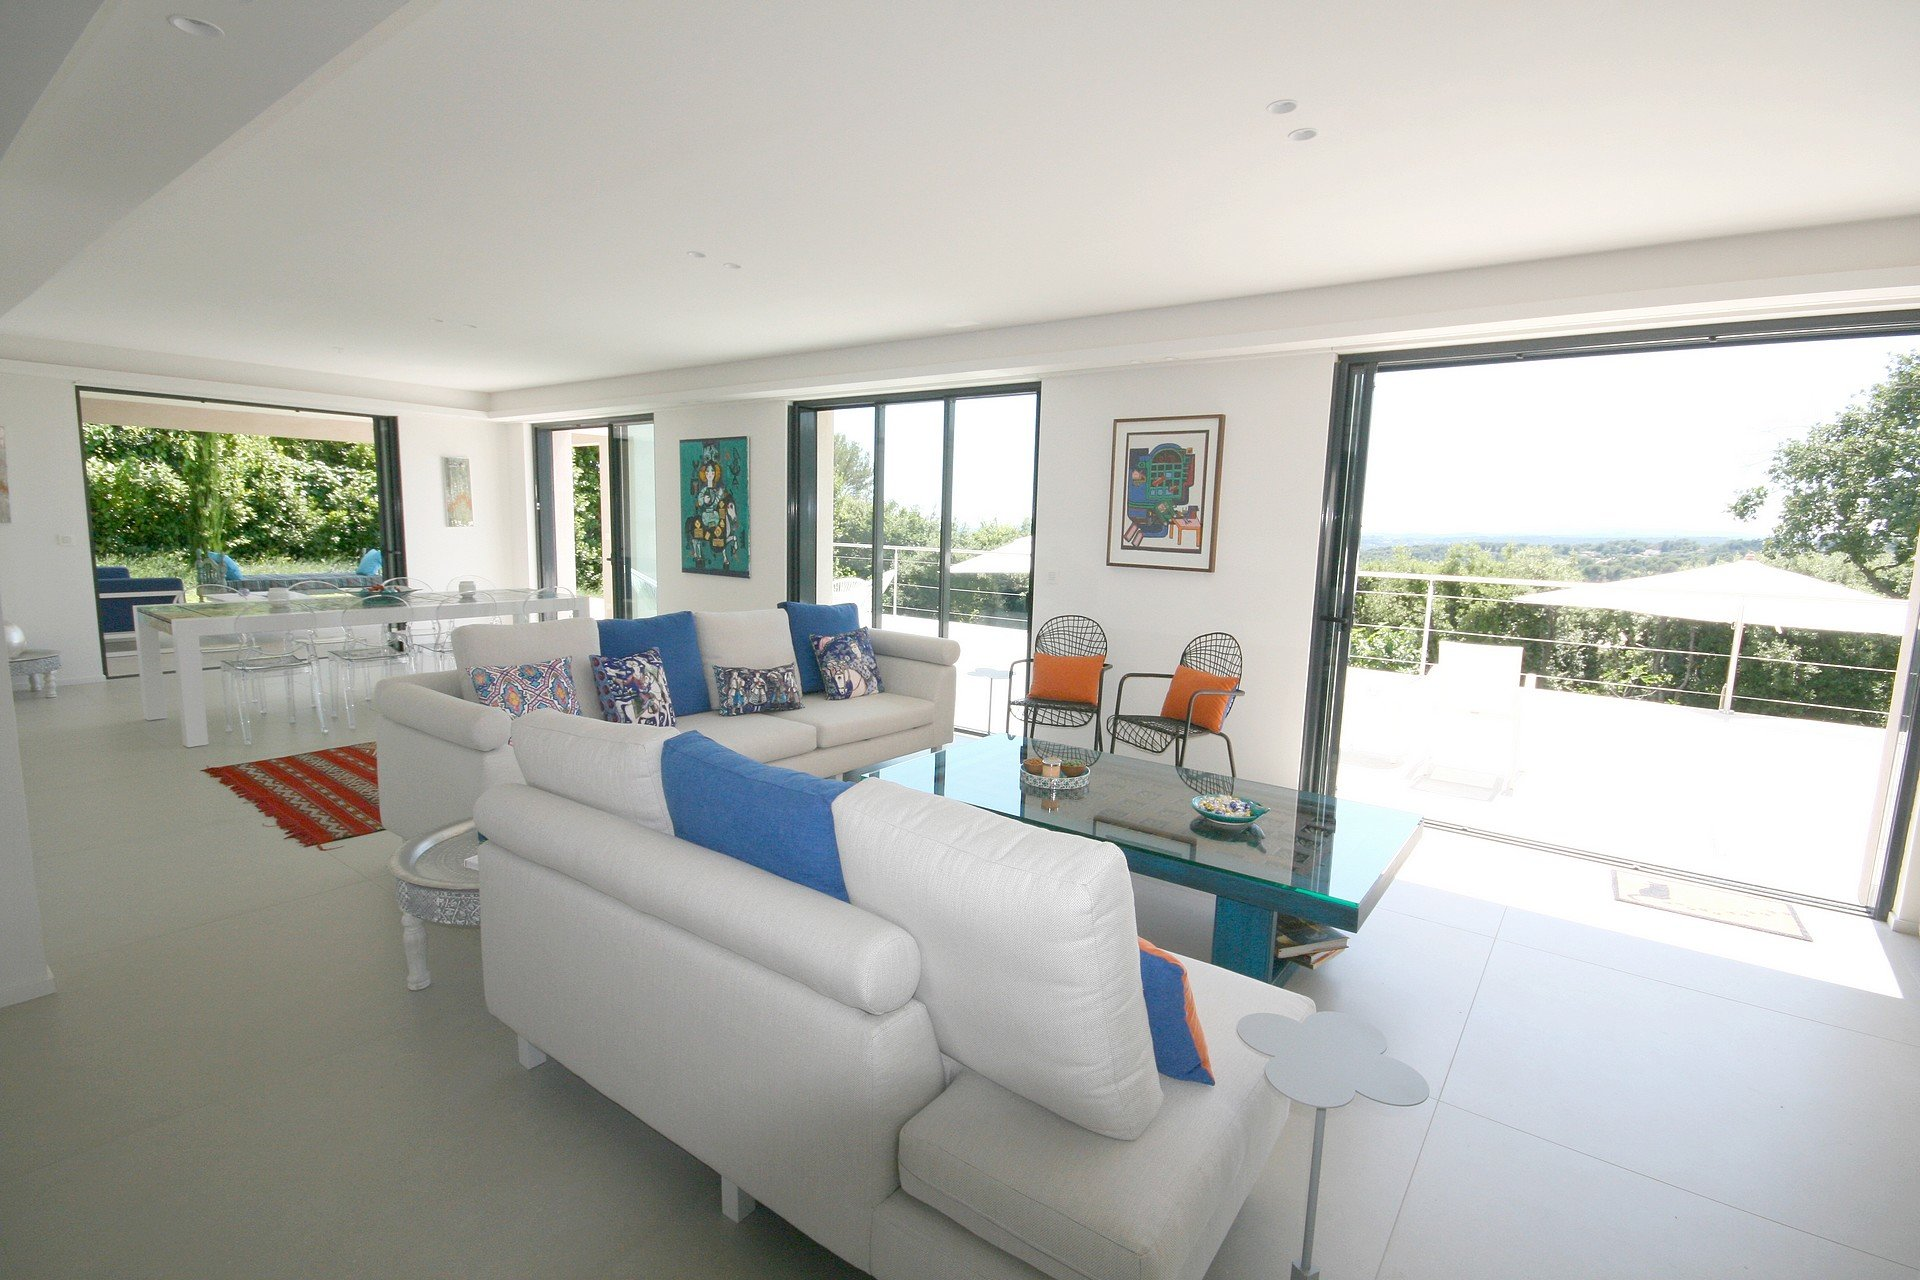 Open views onto the surrounding countryside and the sea